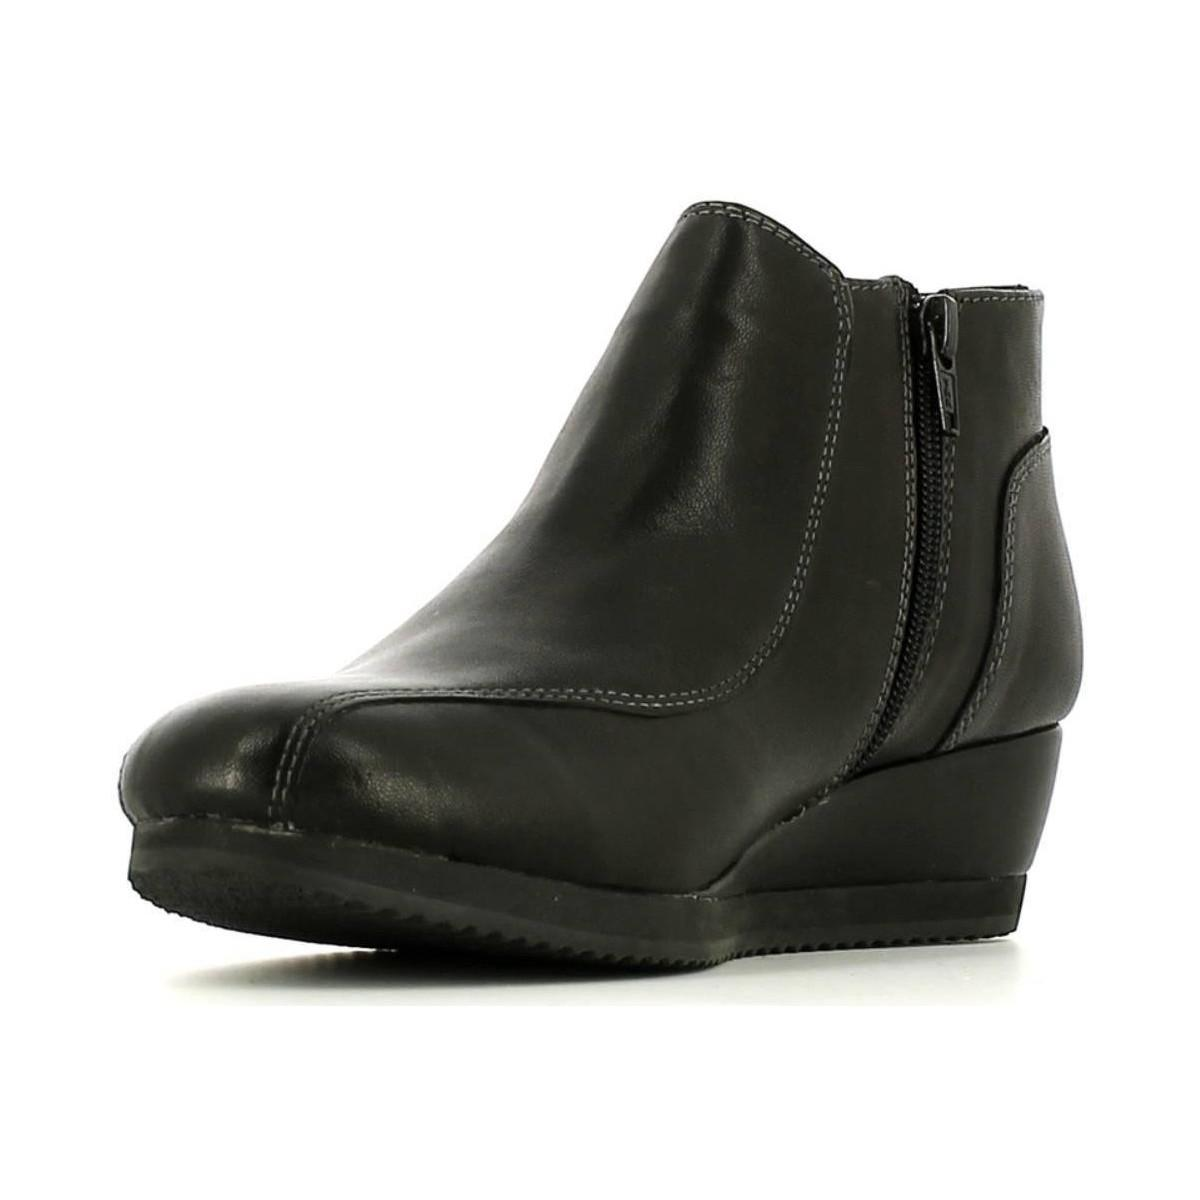 Stonefly 105007 Ankle Boots Women Black Women's Mid Boots In Black